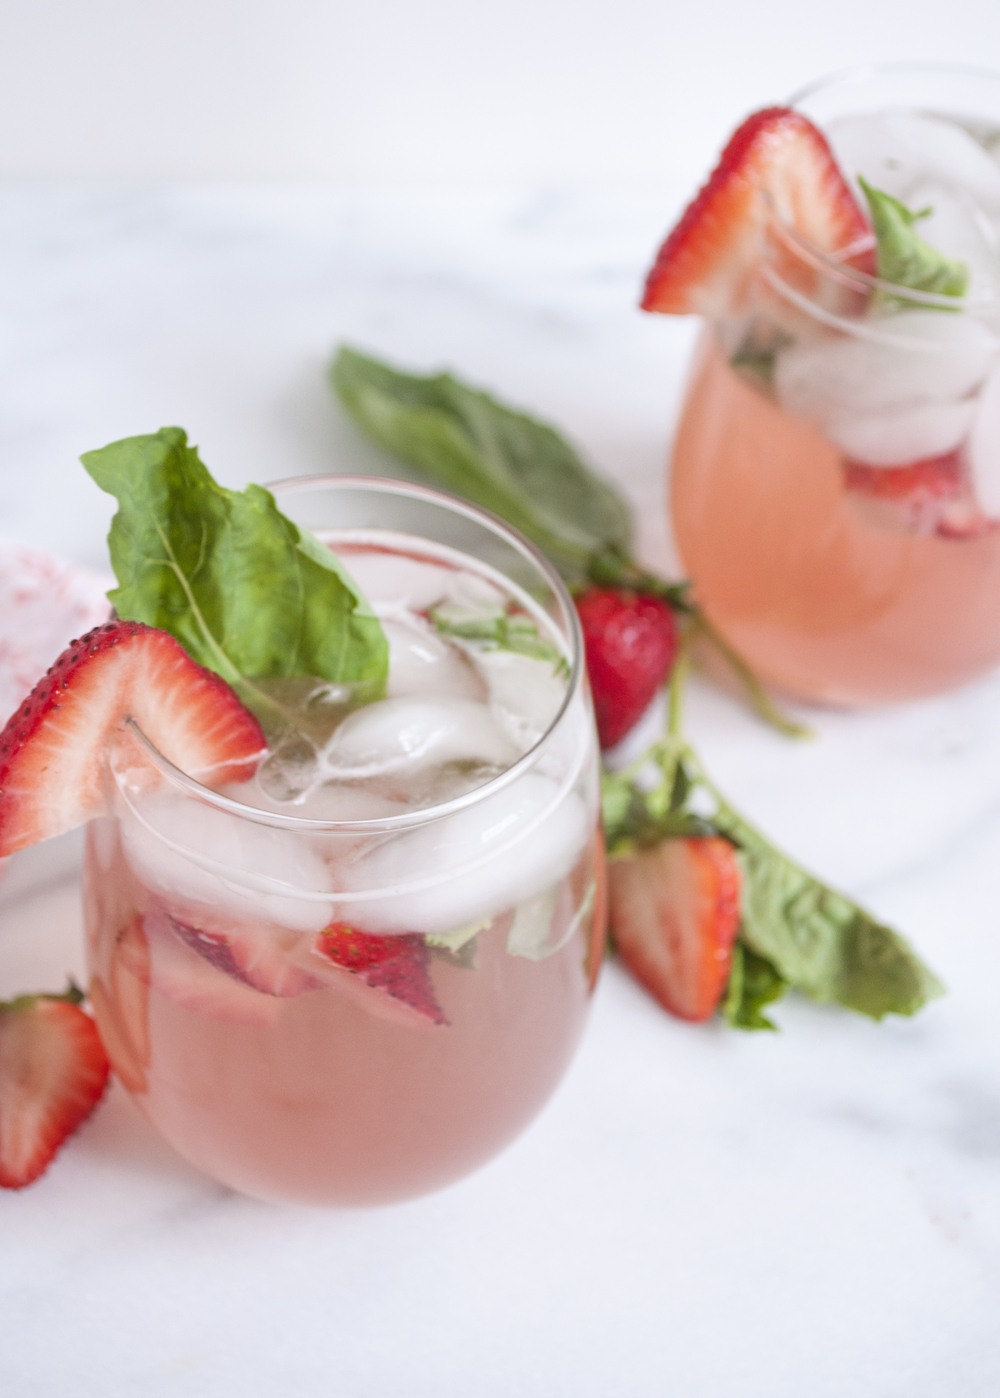 Summerfield Delight | Strawberry Basil Rhubarb Sangria with Rose